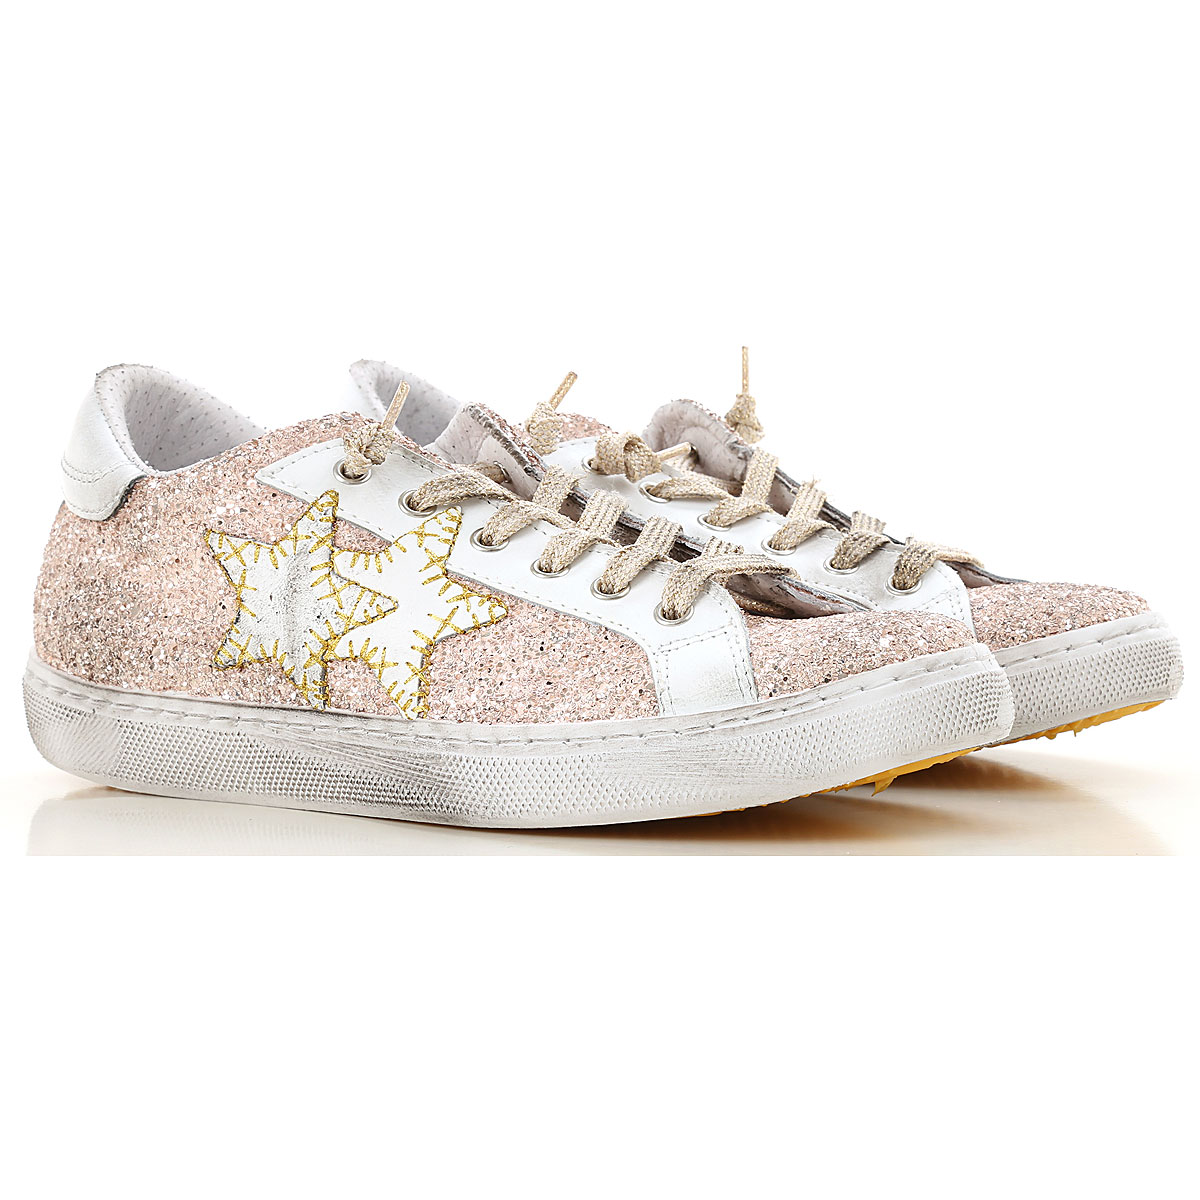 Image of 2Star Sneakers for Women, Pink, Glitter, 2017, 10 11 6 7 8 9